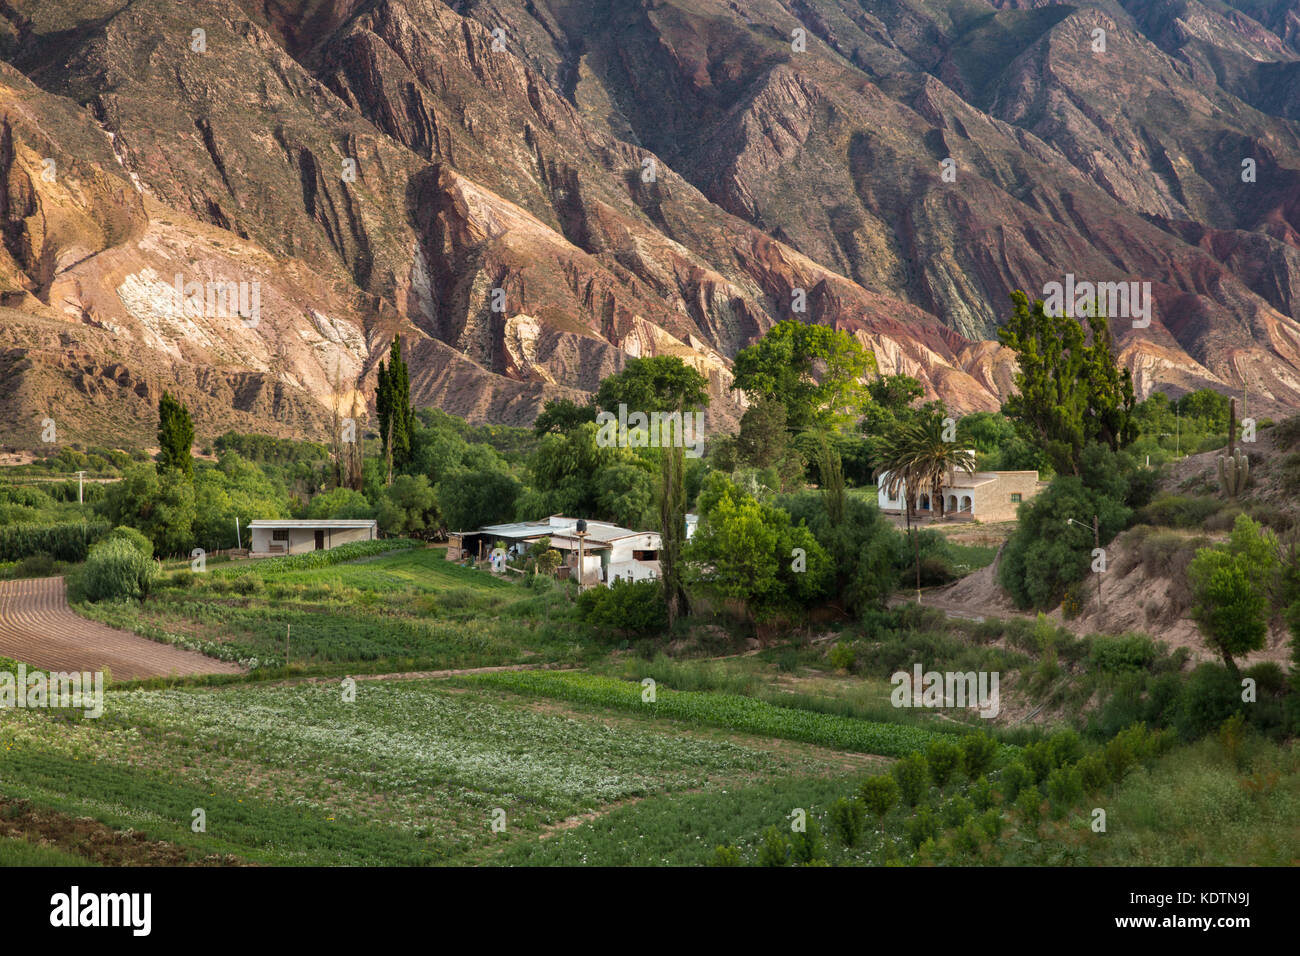 Farmland near Maimará, with the 'Painter's Palette' hills beyond, Quebrada de Humahuaca, Jujuy - Stock Image